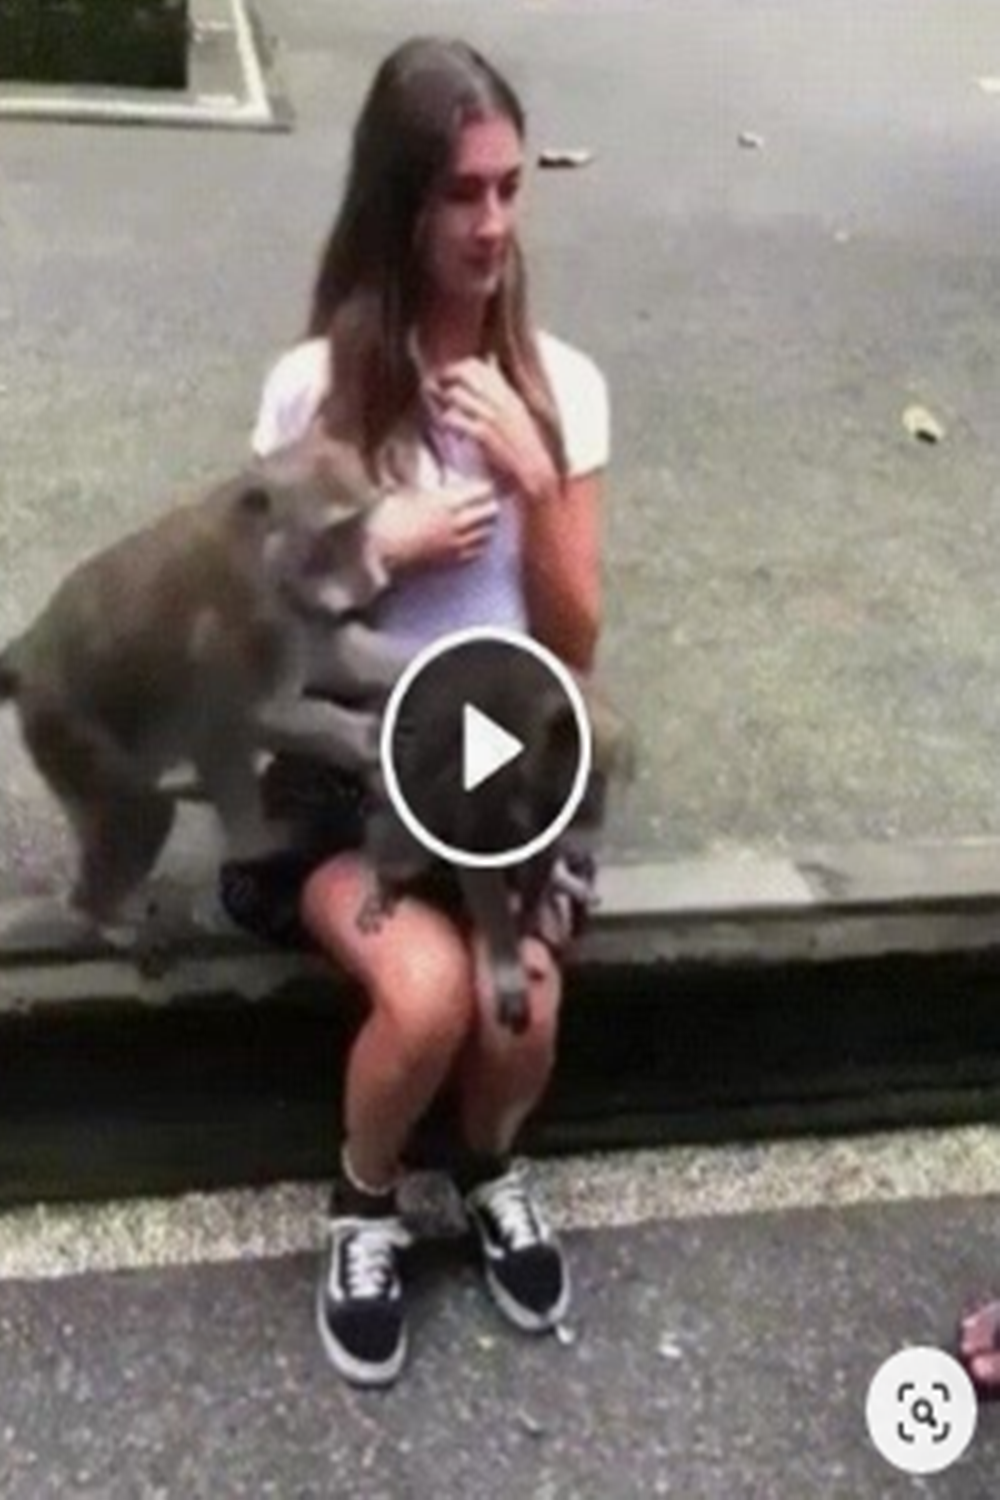 Are These The 15 Funniest GIFs All Time